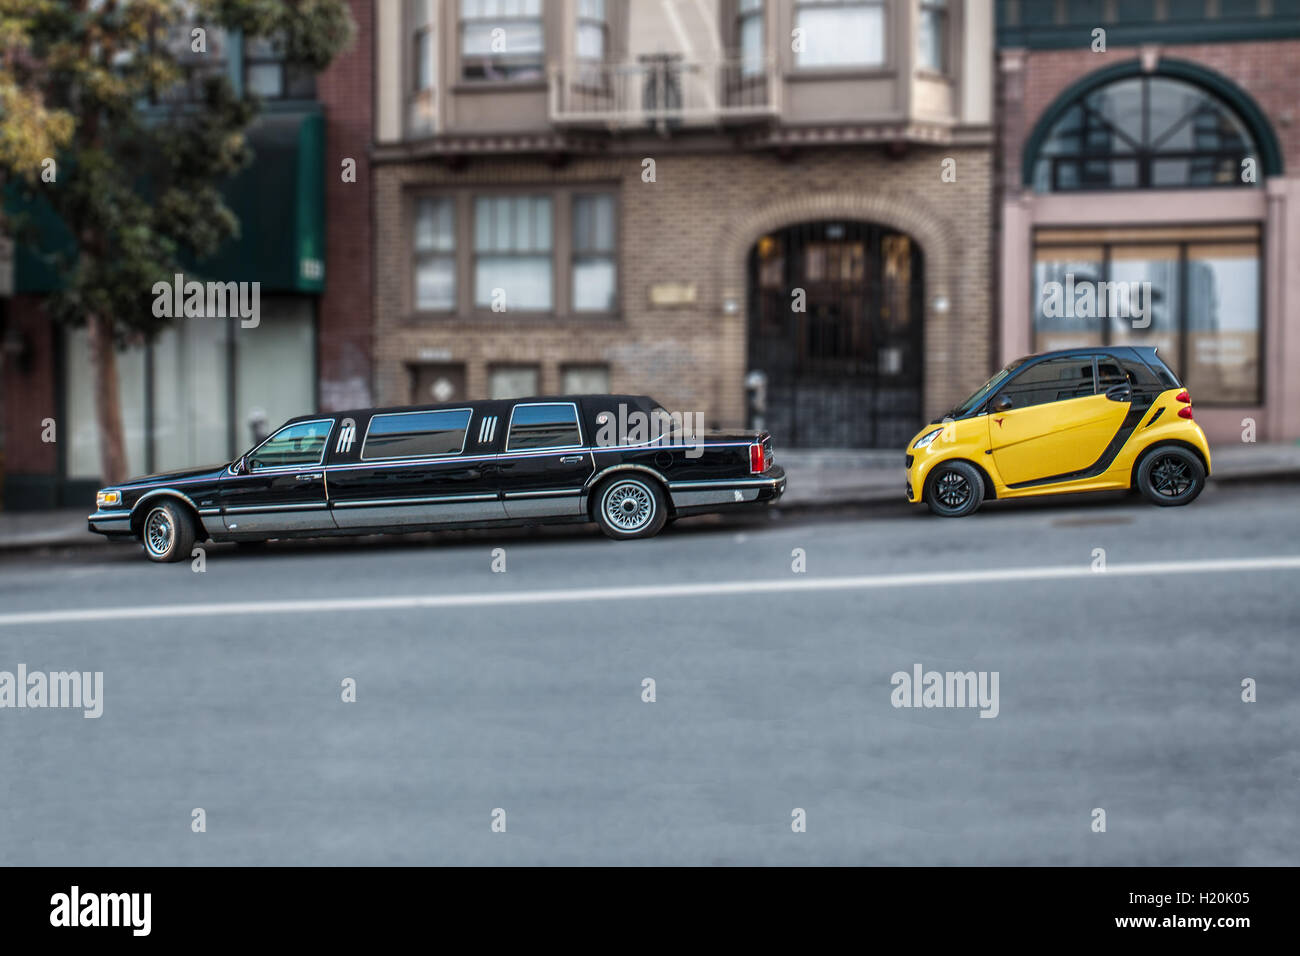 Limousine and mini in the street of San Francisco: symbol of inequality and gentrification in the city - Stock Image